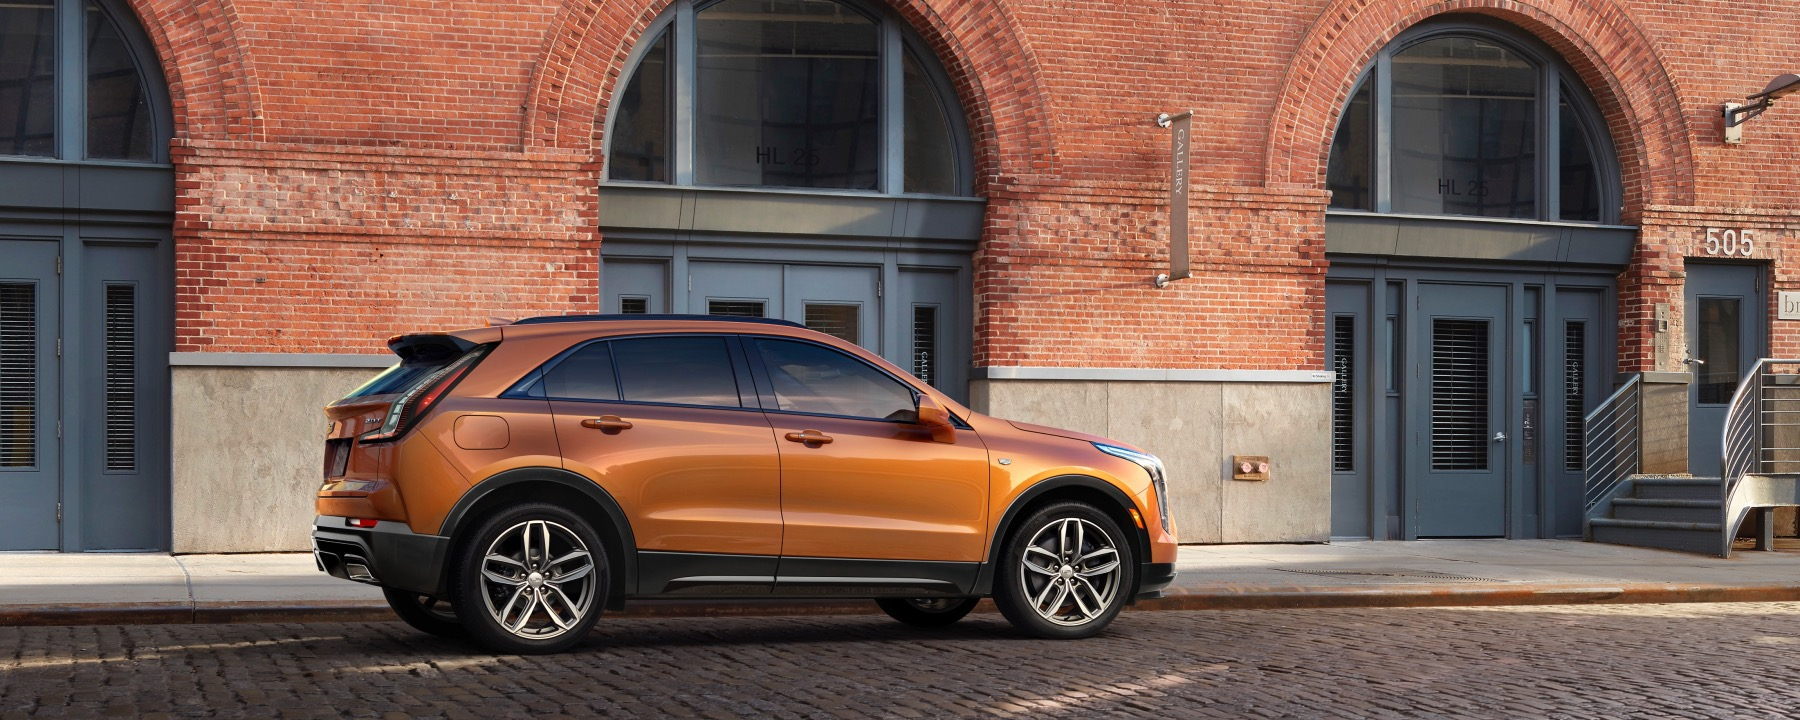 when crossover midsize meets luxury srx cadillac suv